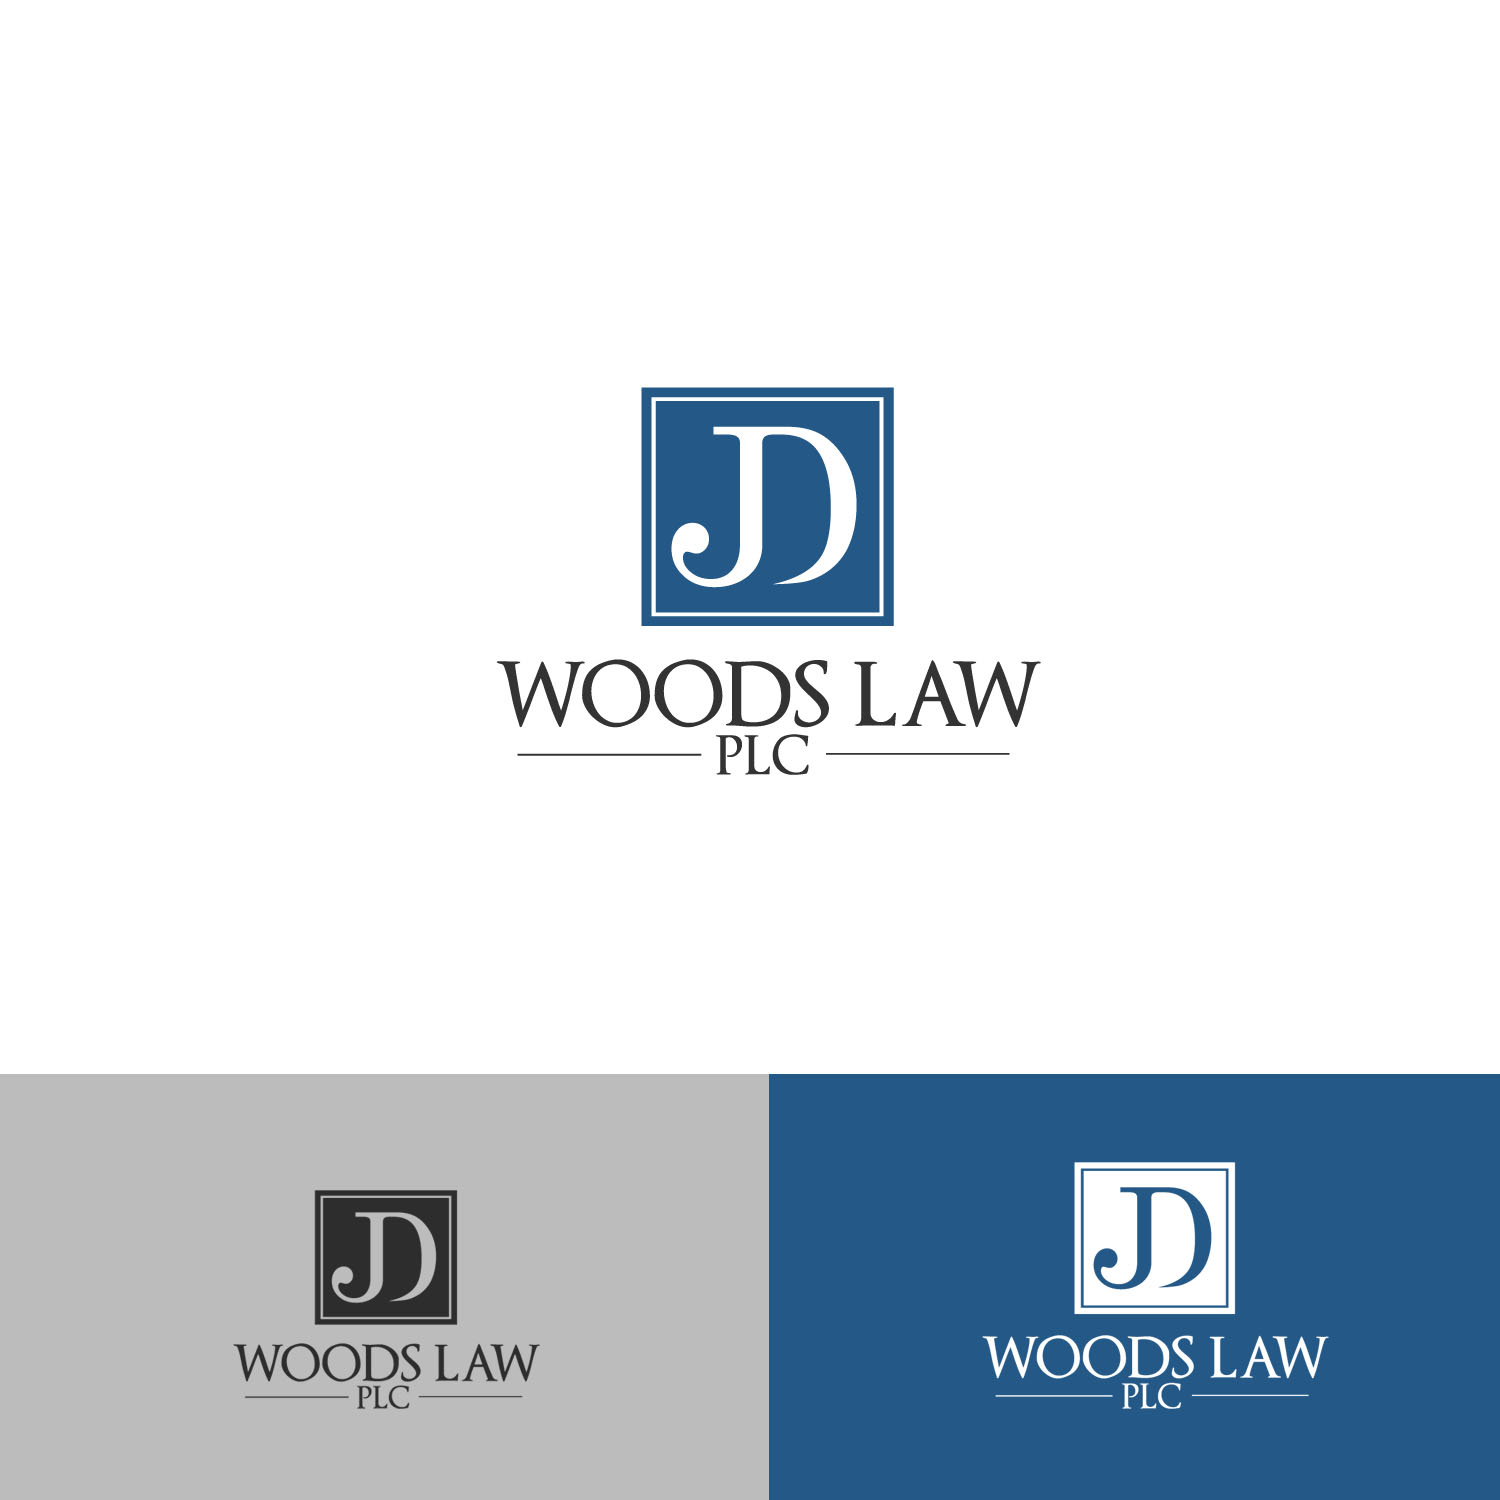 serious professional law firm logo design for jd woods law plc by art creators design 12841458 designcrowd